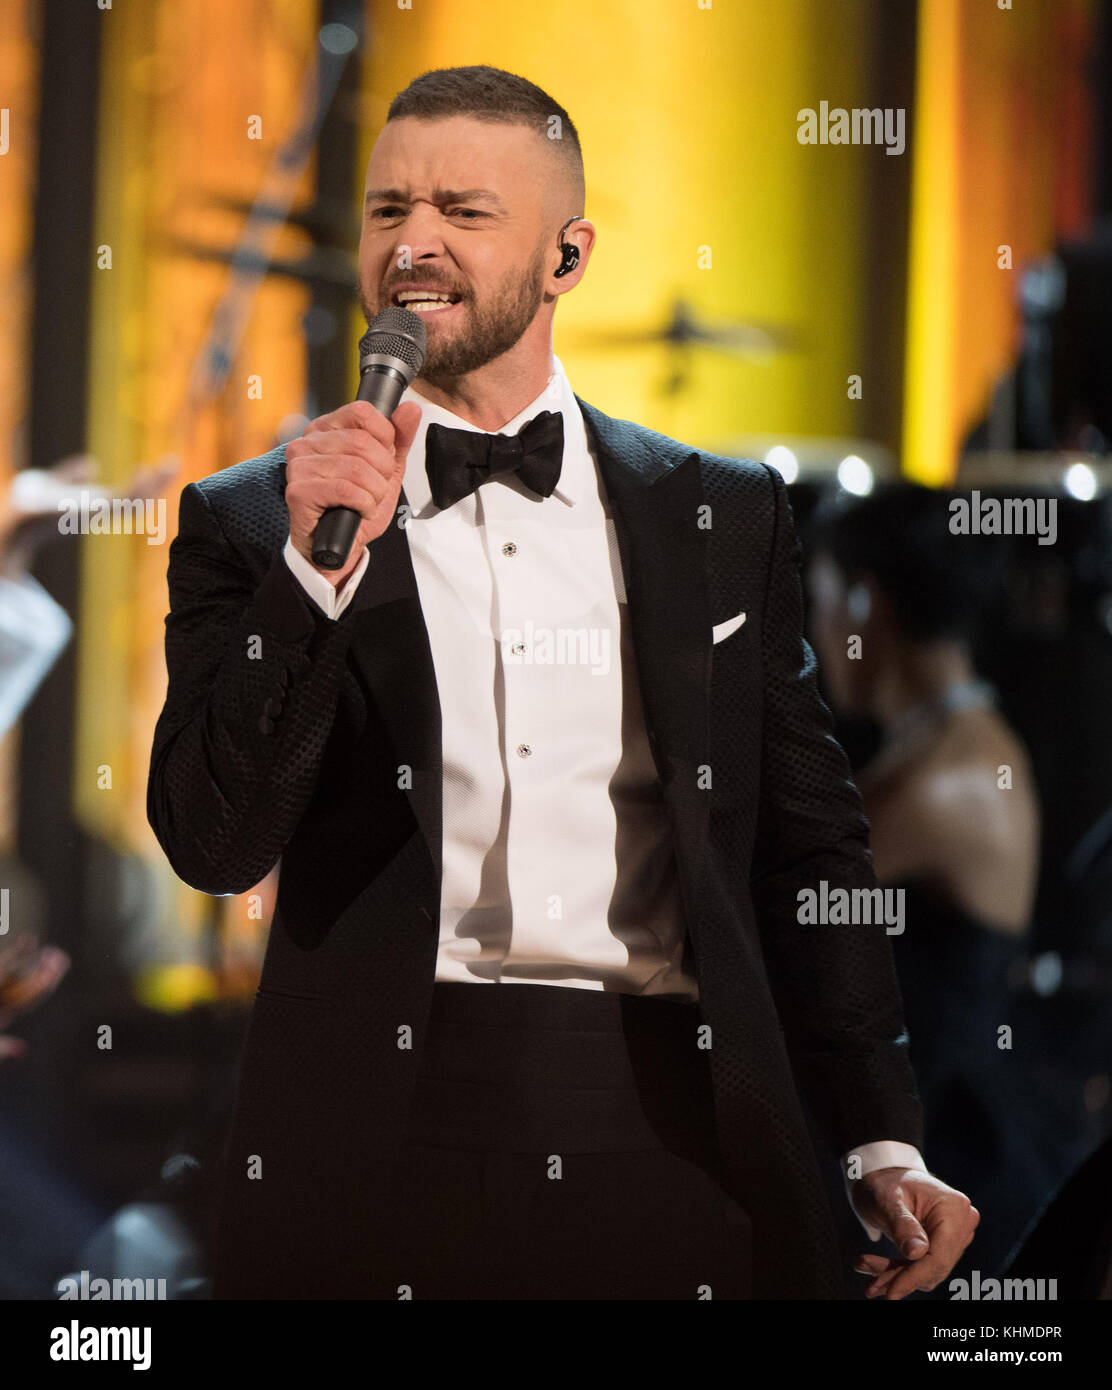 HOLLYWOOD, CA - FEBRUARY 26: Justin Timberlake attends the 89th Annual Academy Awards at Hollywood & Highland Center Stock Photo